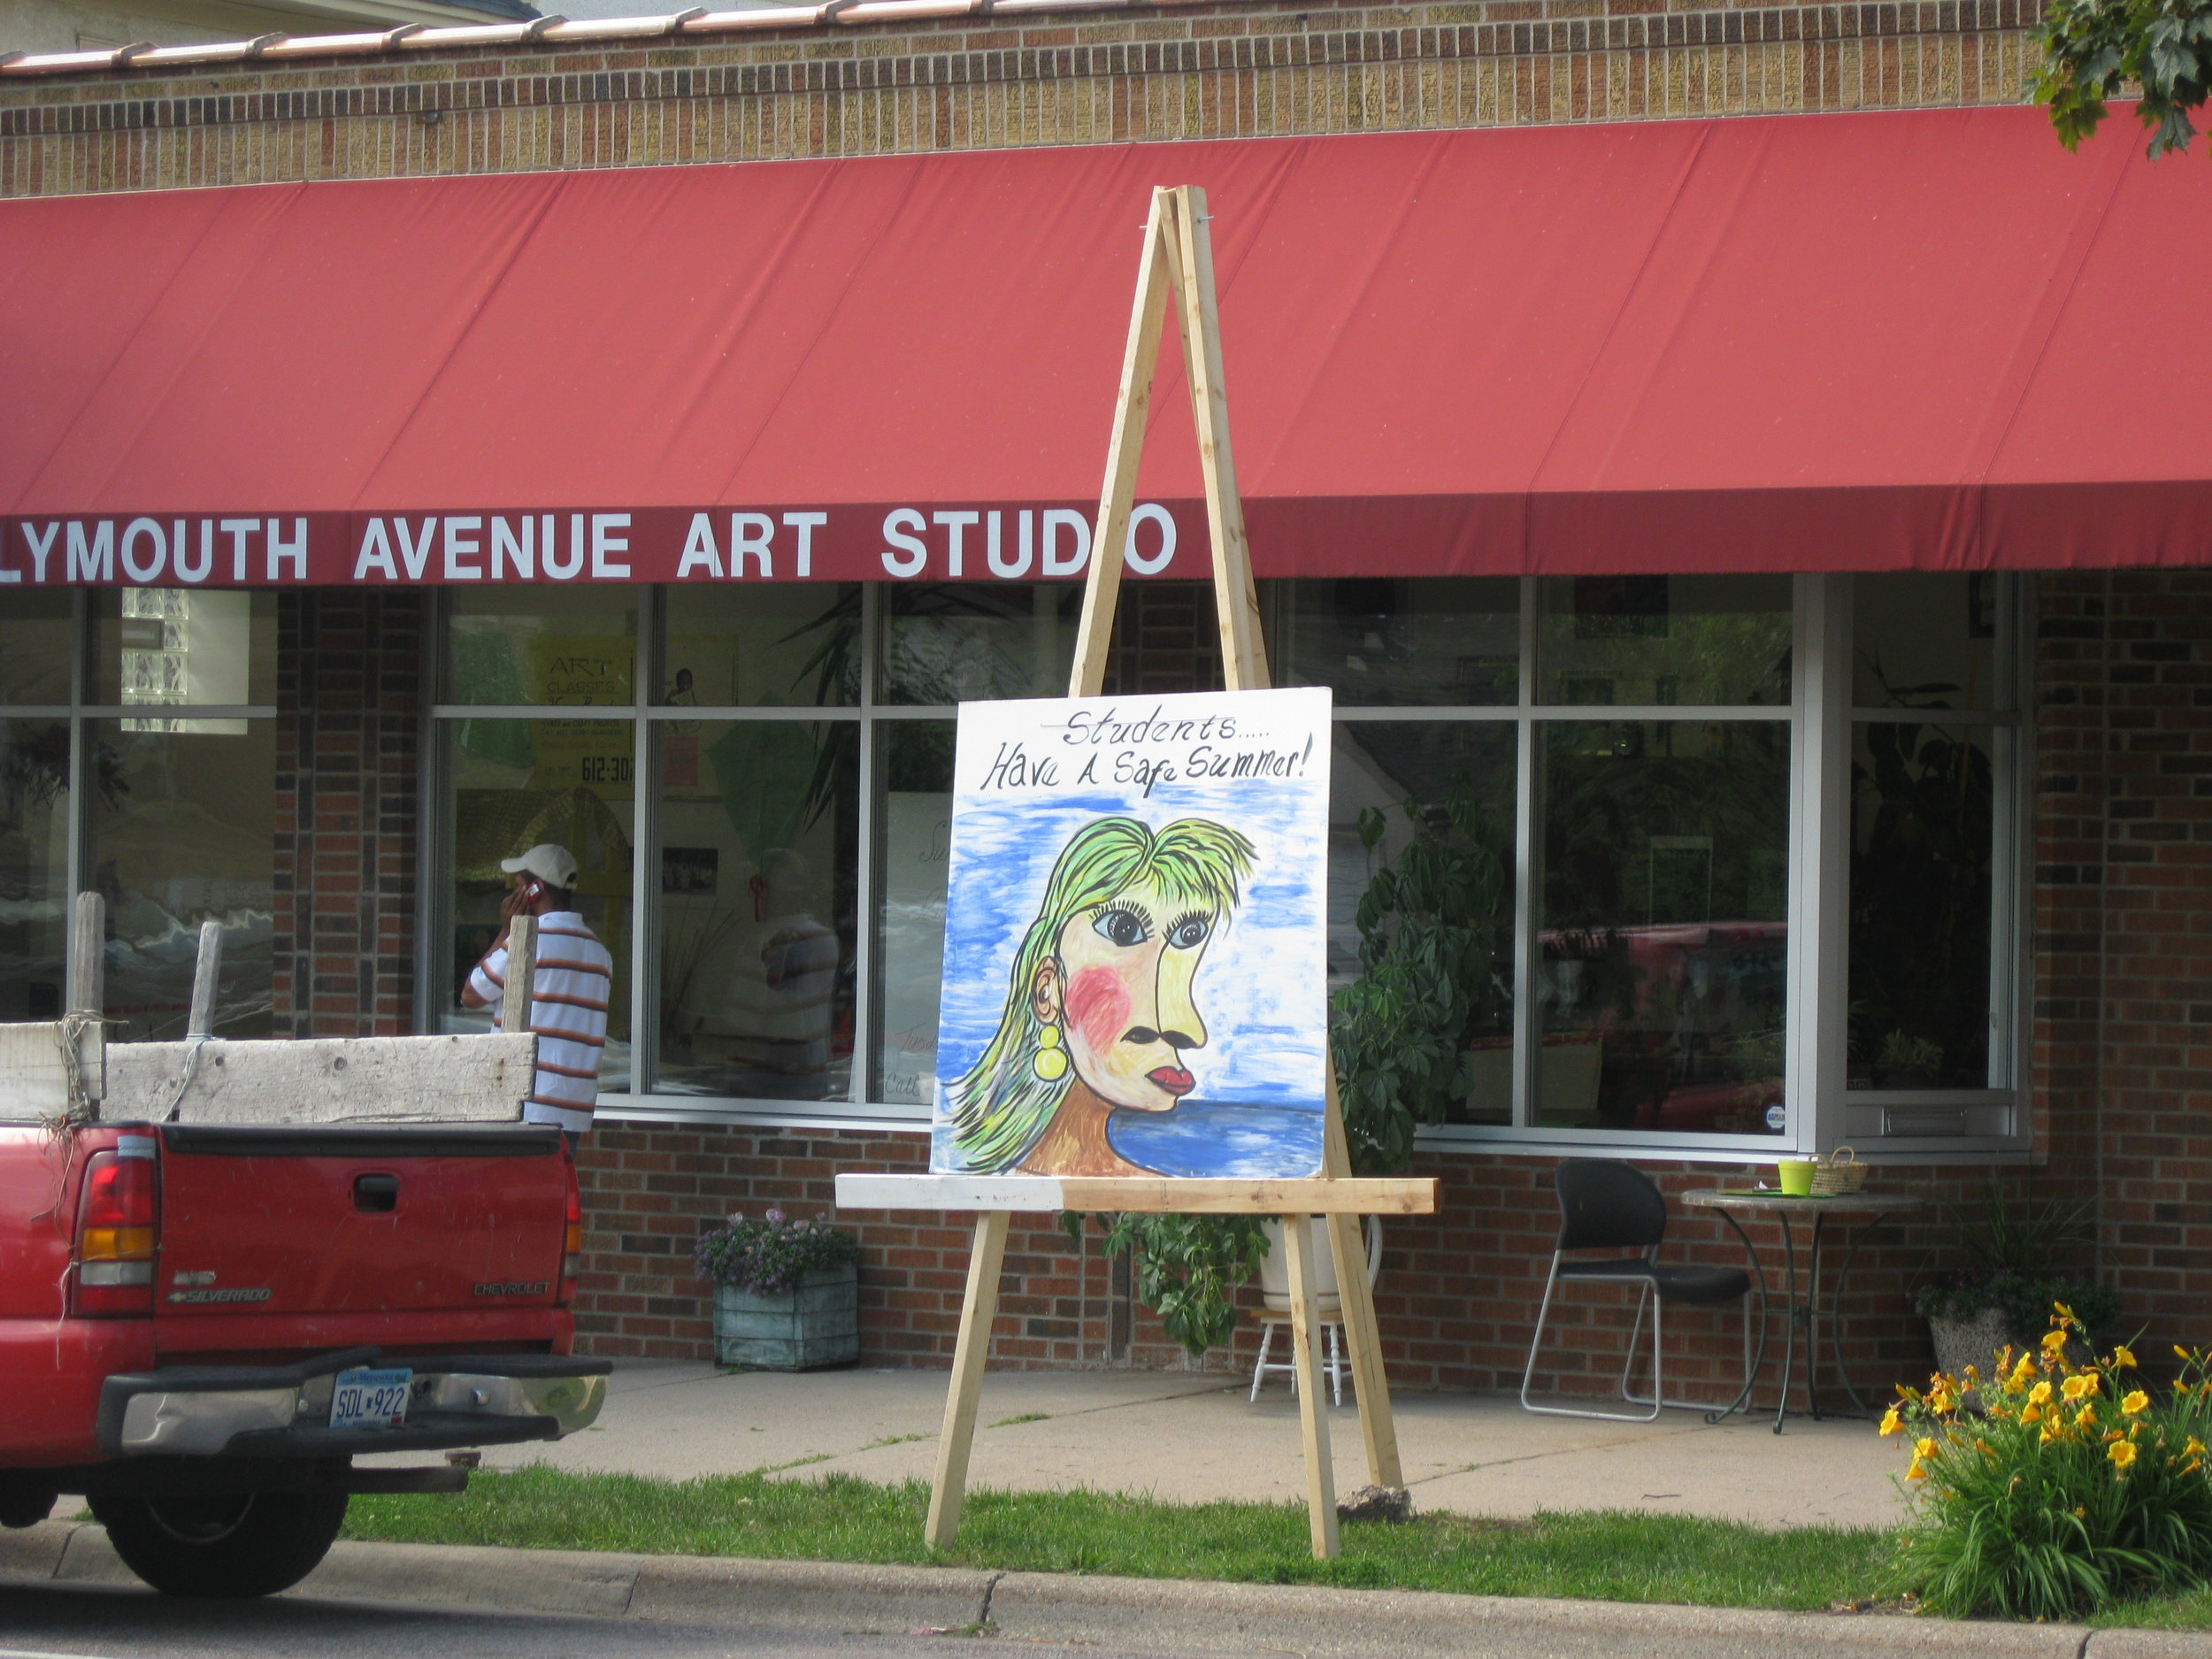 Plymouth Avenue Art Studio - This art studio with North Minneapolis roots is a place to think, create and play. Explore the open art space in front, artist workspaces in back and art library. Artwork showcase local community artists living in the neighborhood. An art project creating jewelry out of yarn and other materials will be available.